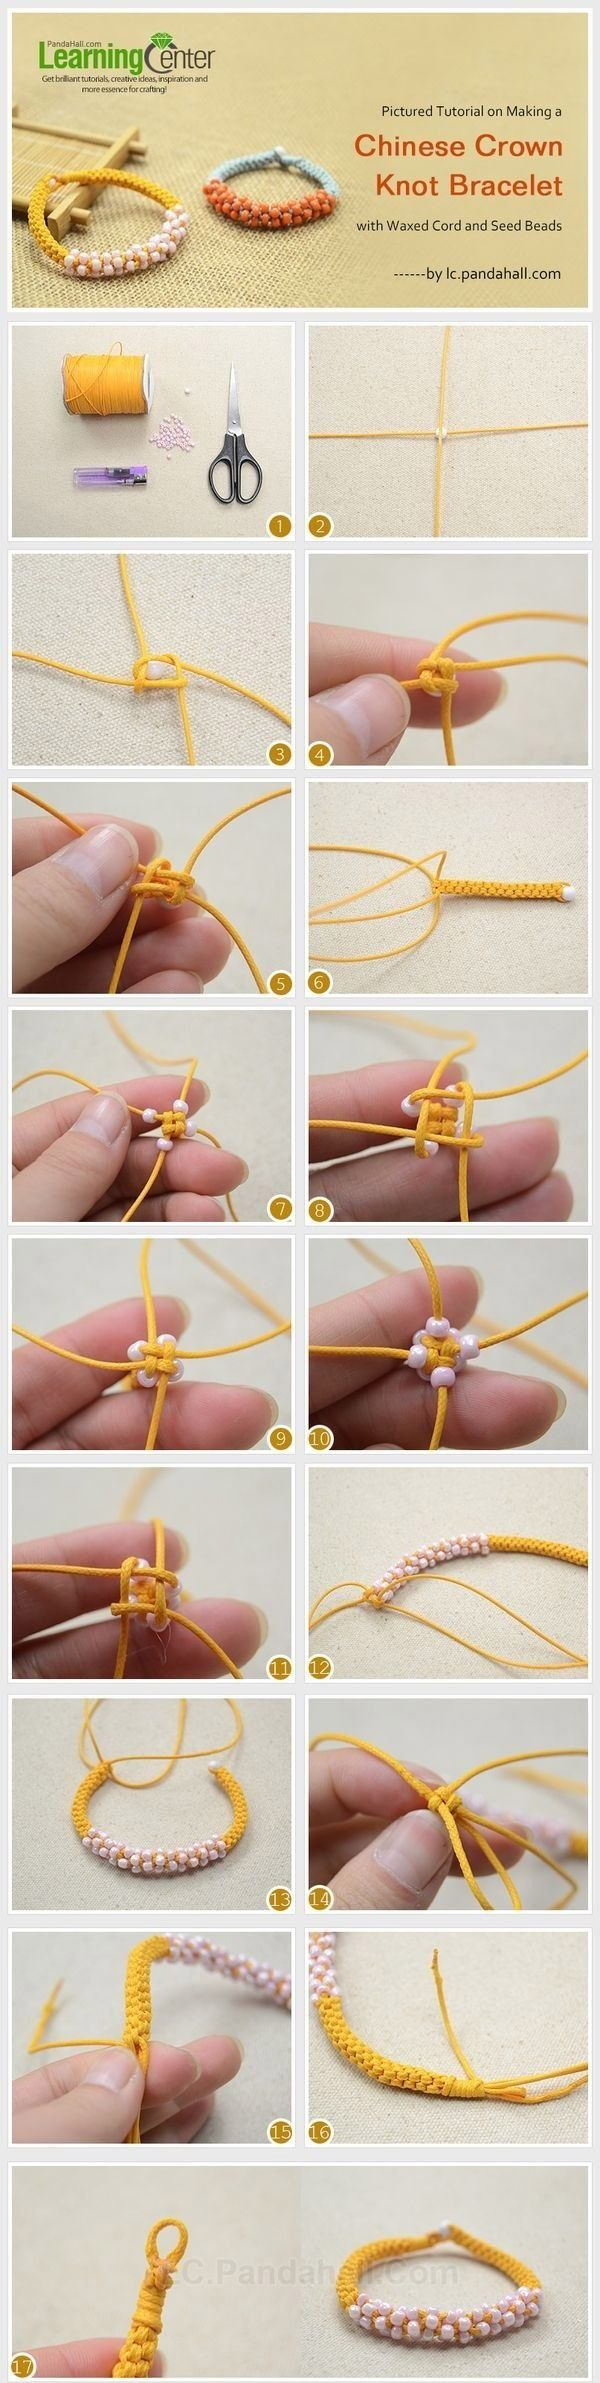 diy craft knit hand rope